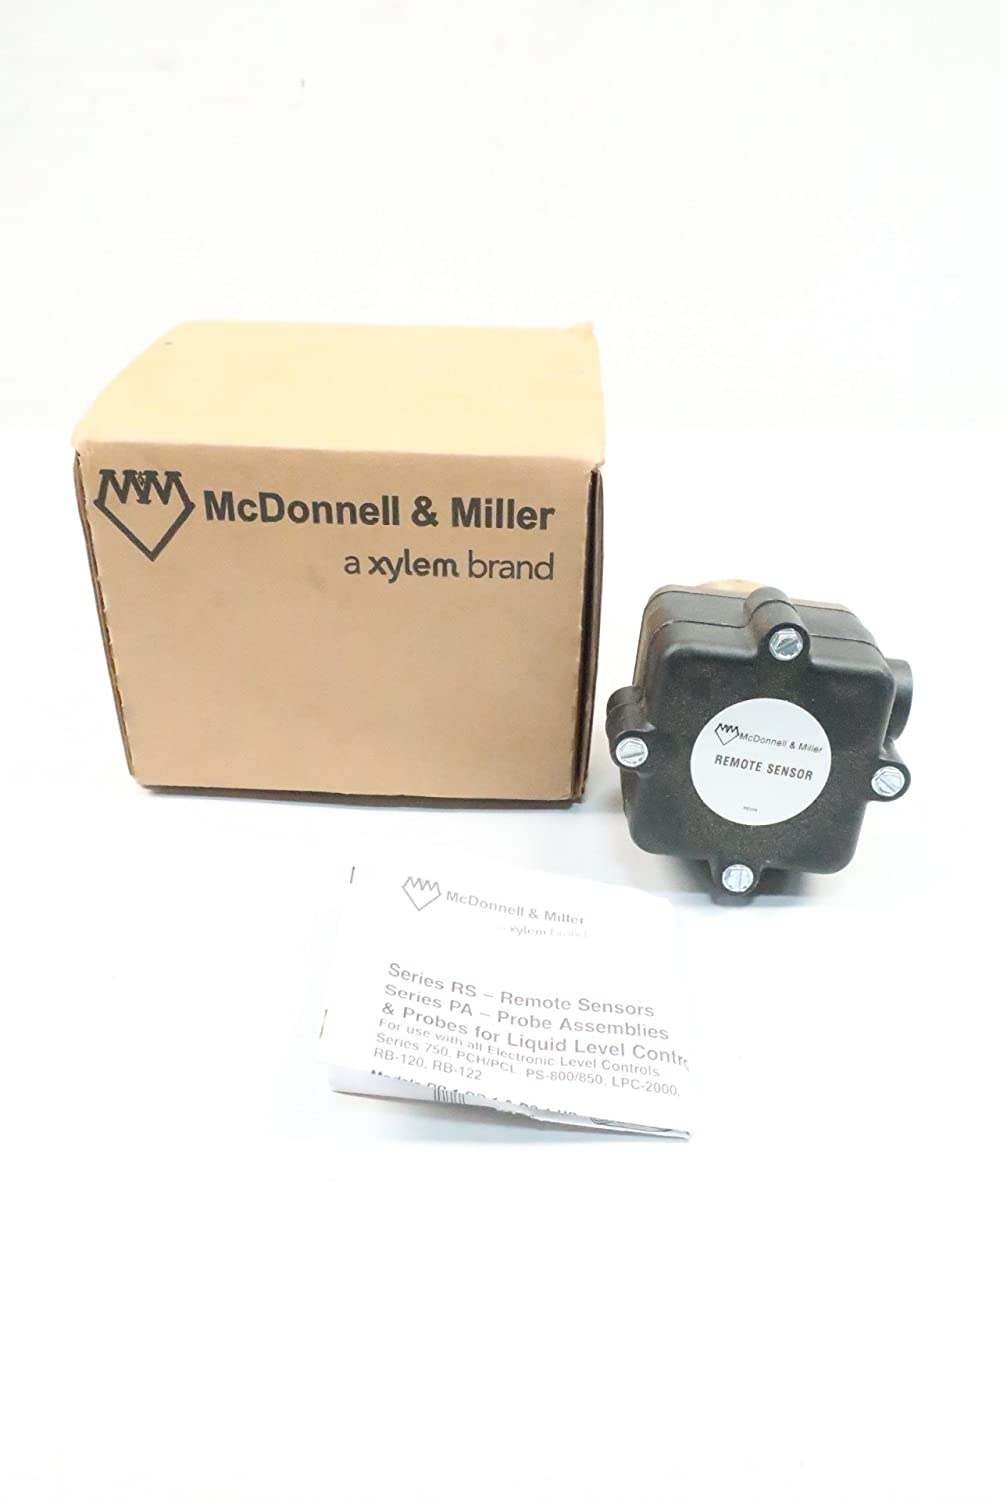 MCDONNELL & MILLER RS-4-BR-1 Remote Level SENSORS Assembly D624681: Amazon.com: Industrial & Scientific